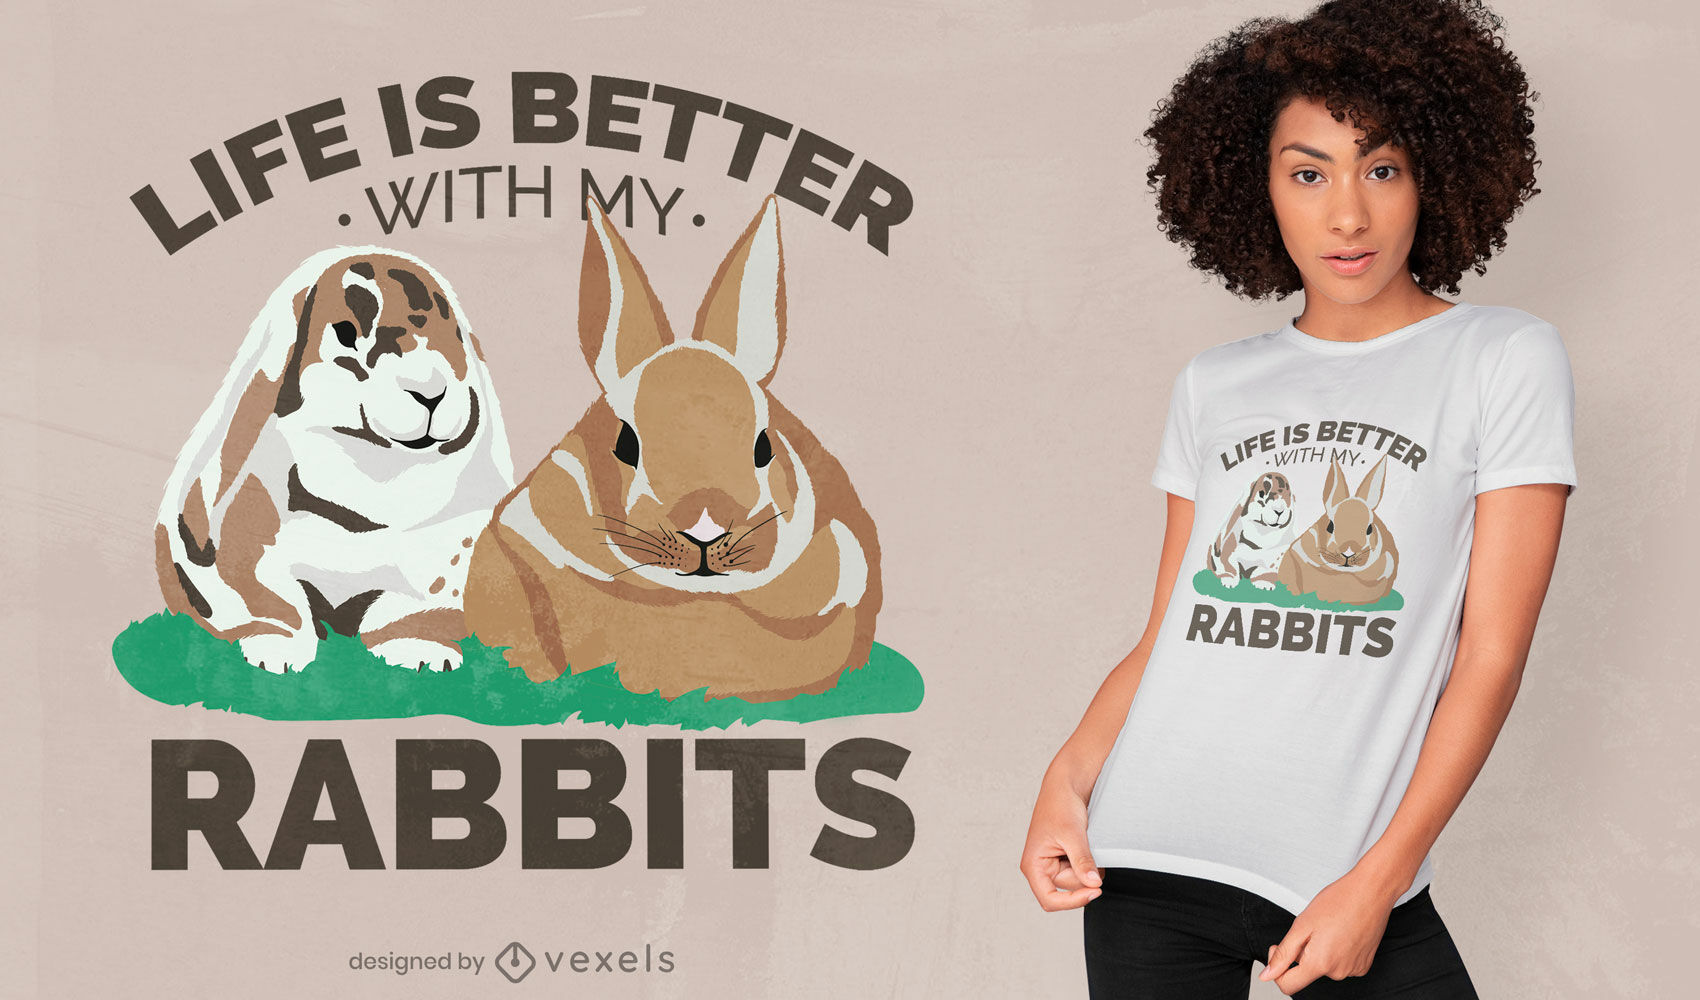 Life is better with my rabbits t-shirt design